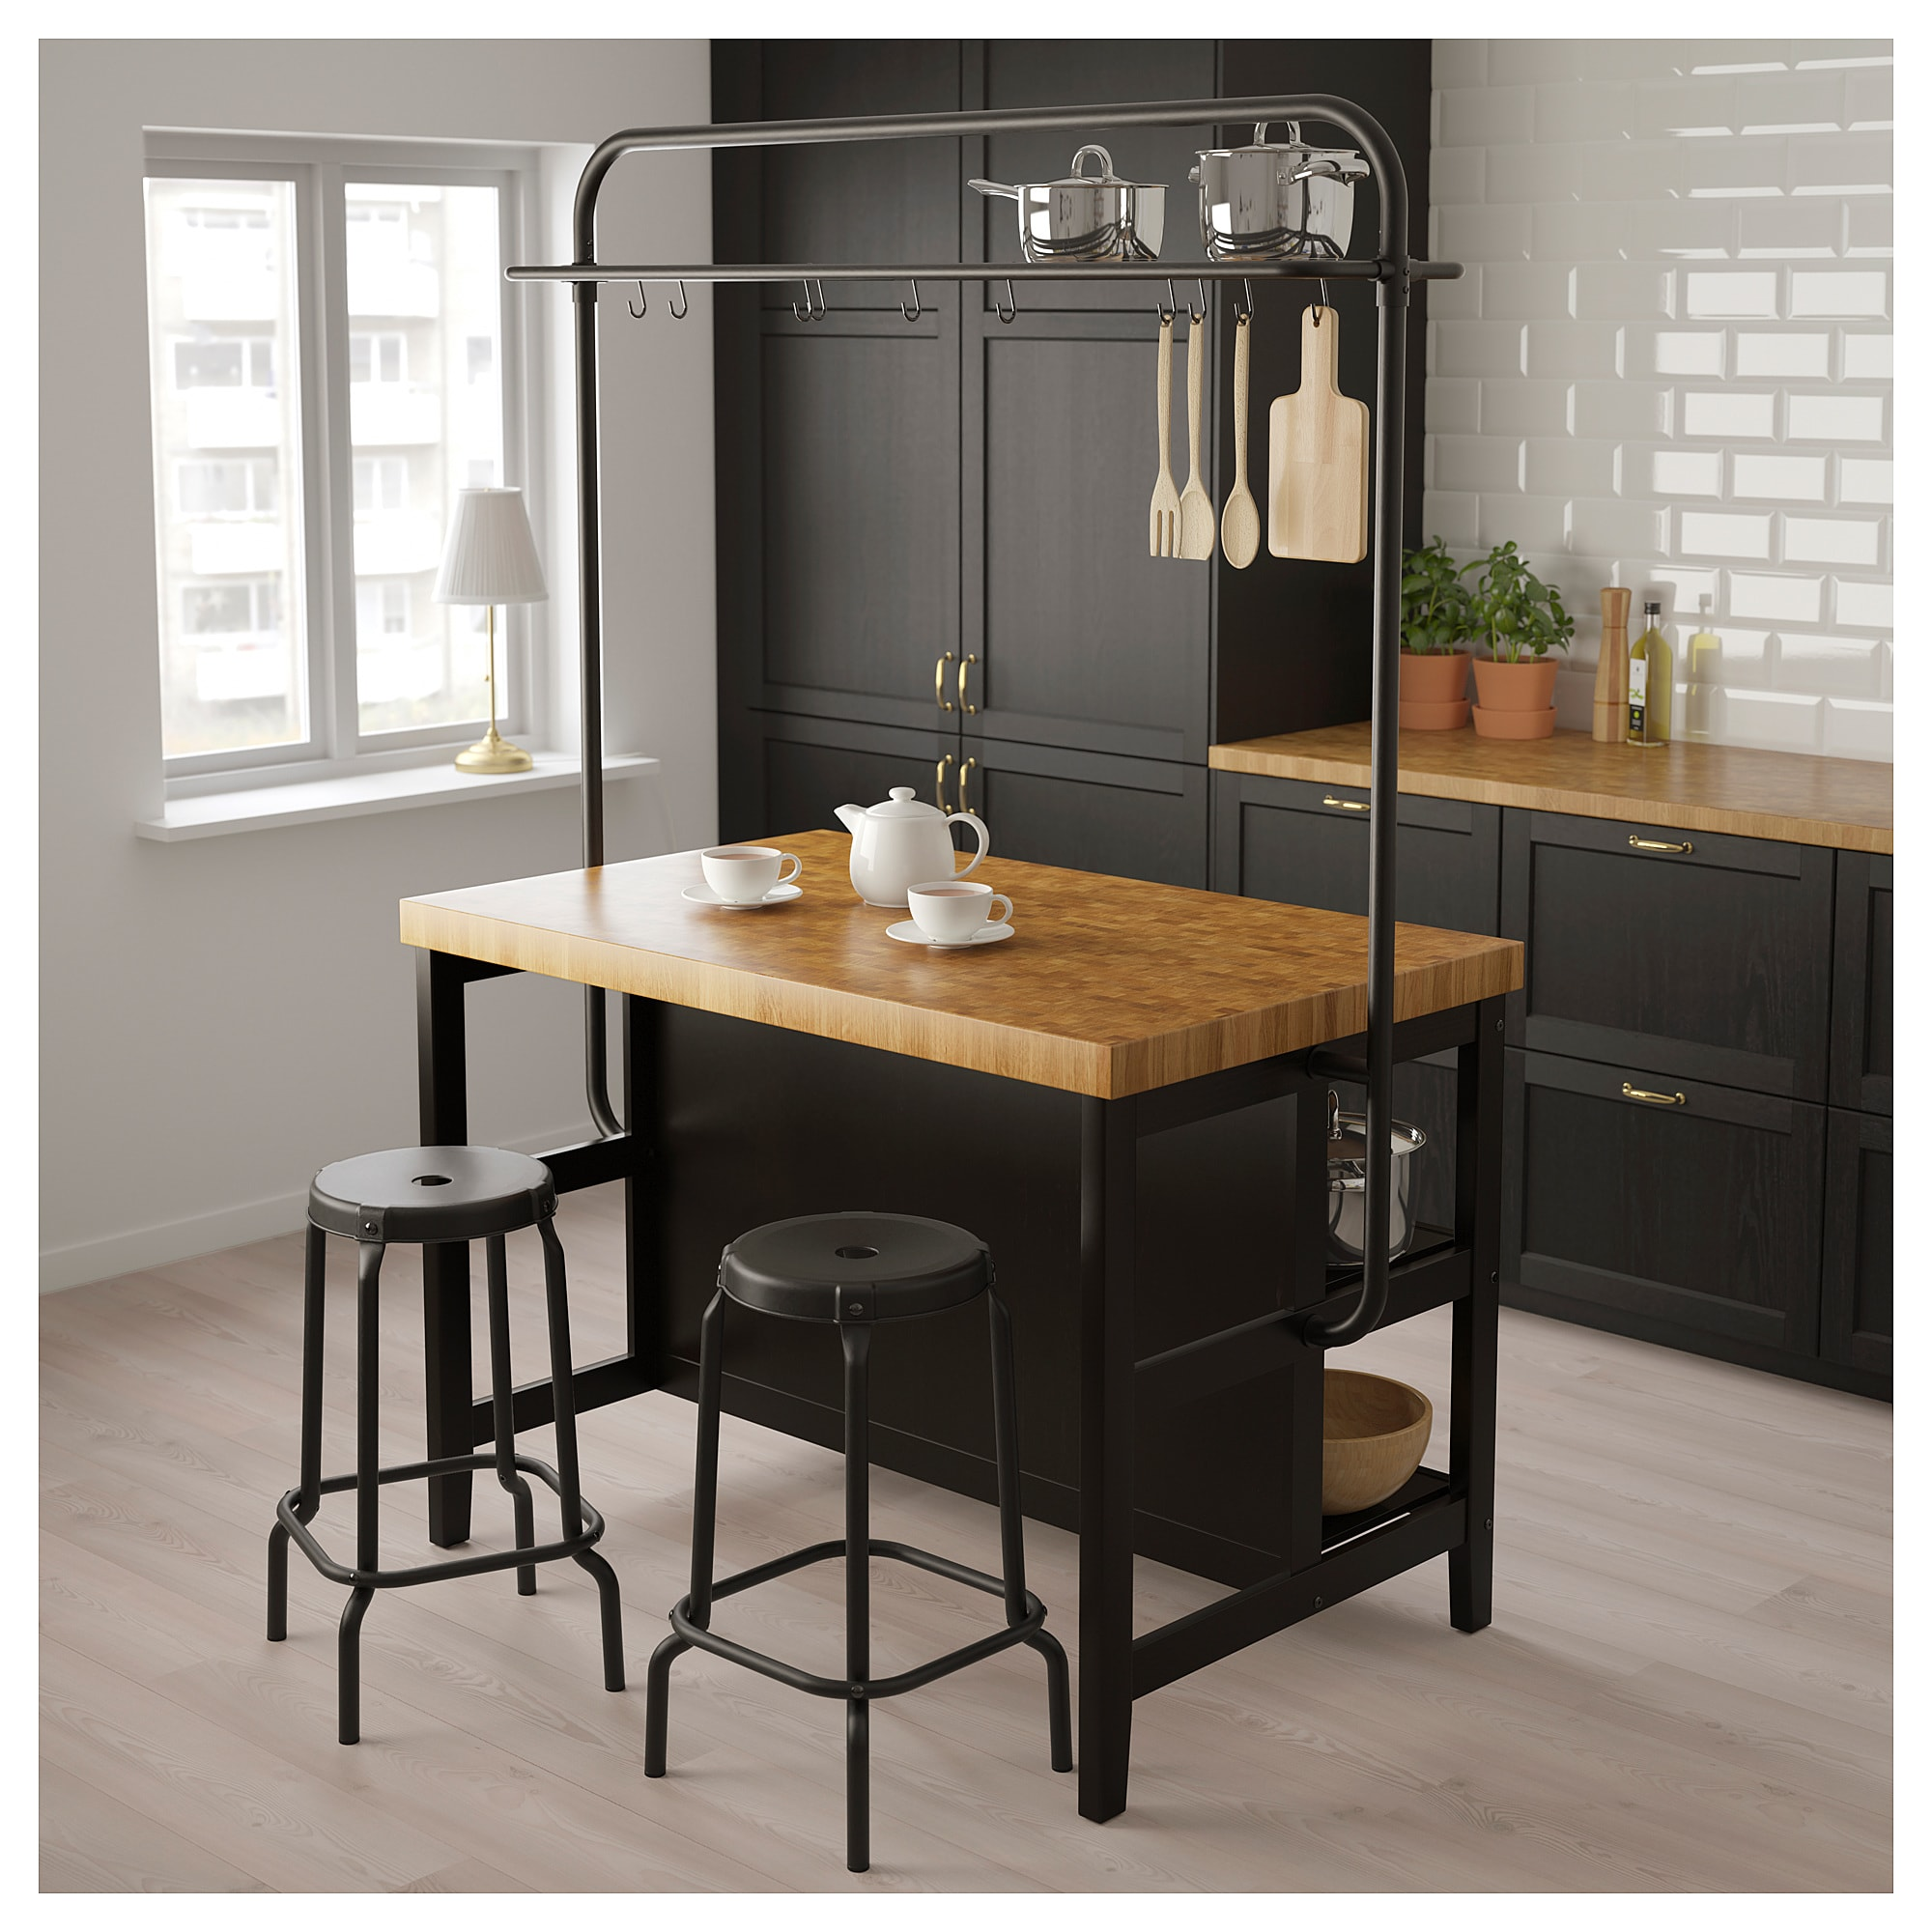 Ikea Ilot Cuisine: Kitchen Island With Rack, Black, Oak, 49 5/8x31 1/8x76